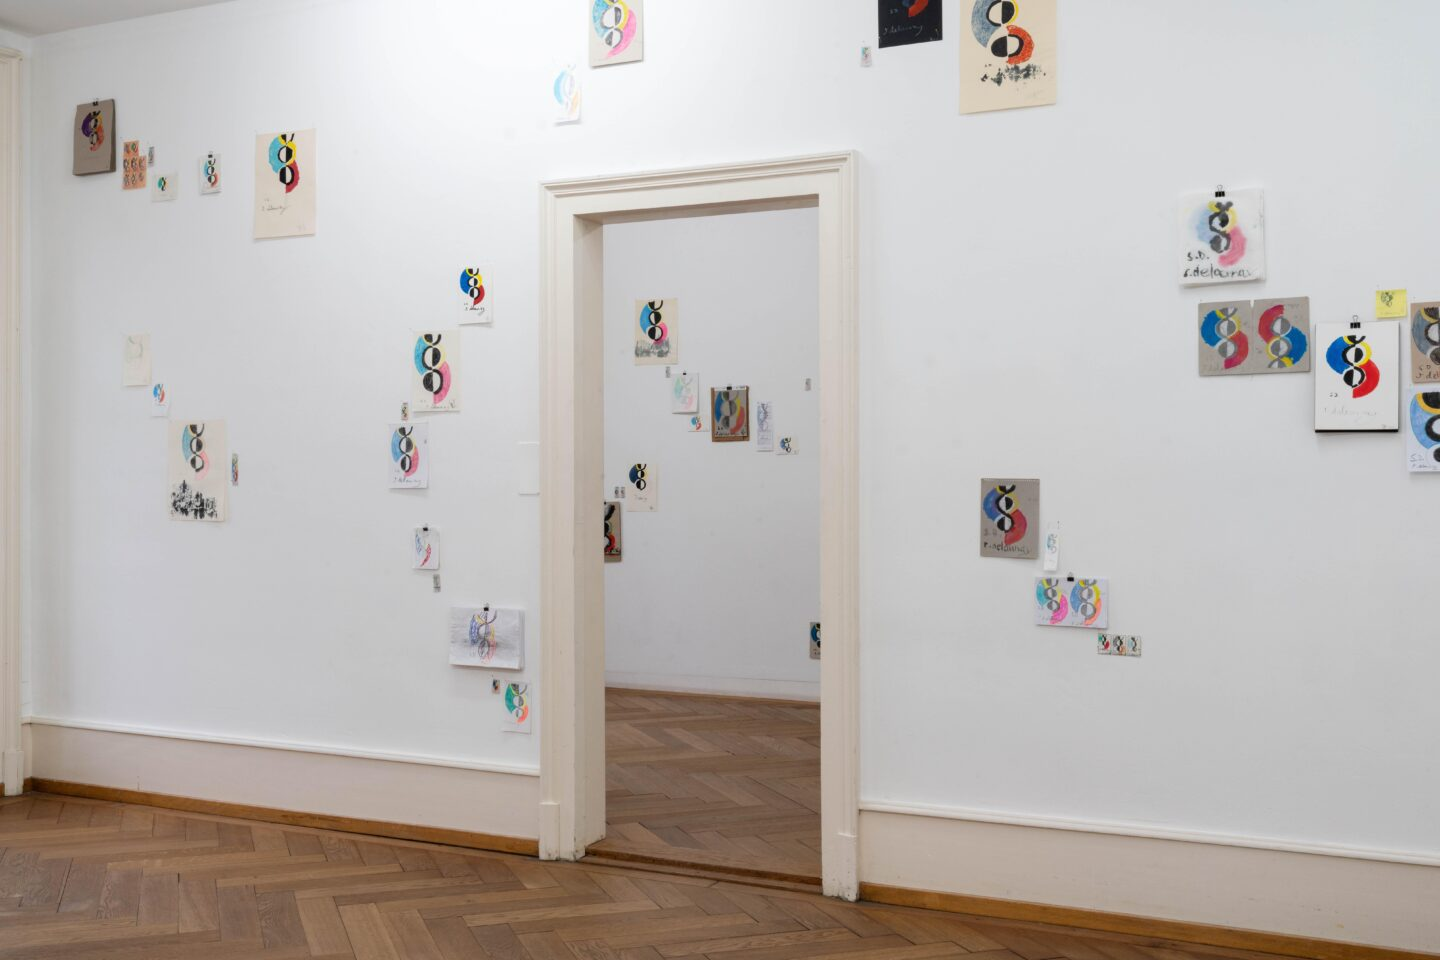 Exhibition View Céline Manz Soloshow «9 espaces distincts» at Kunsthaus Langenthal, Langenthal, 2020 / Photo: CE / Courtesy: the artist and Kunsthaus Langenthal